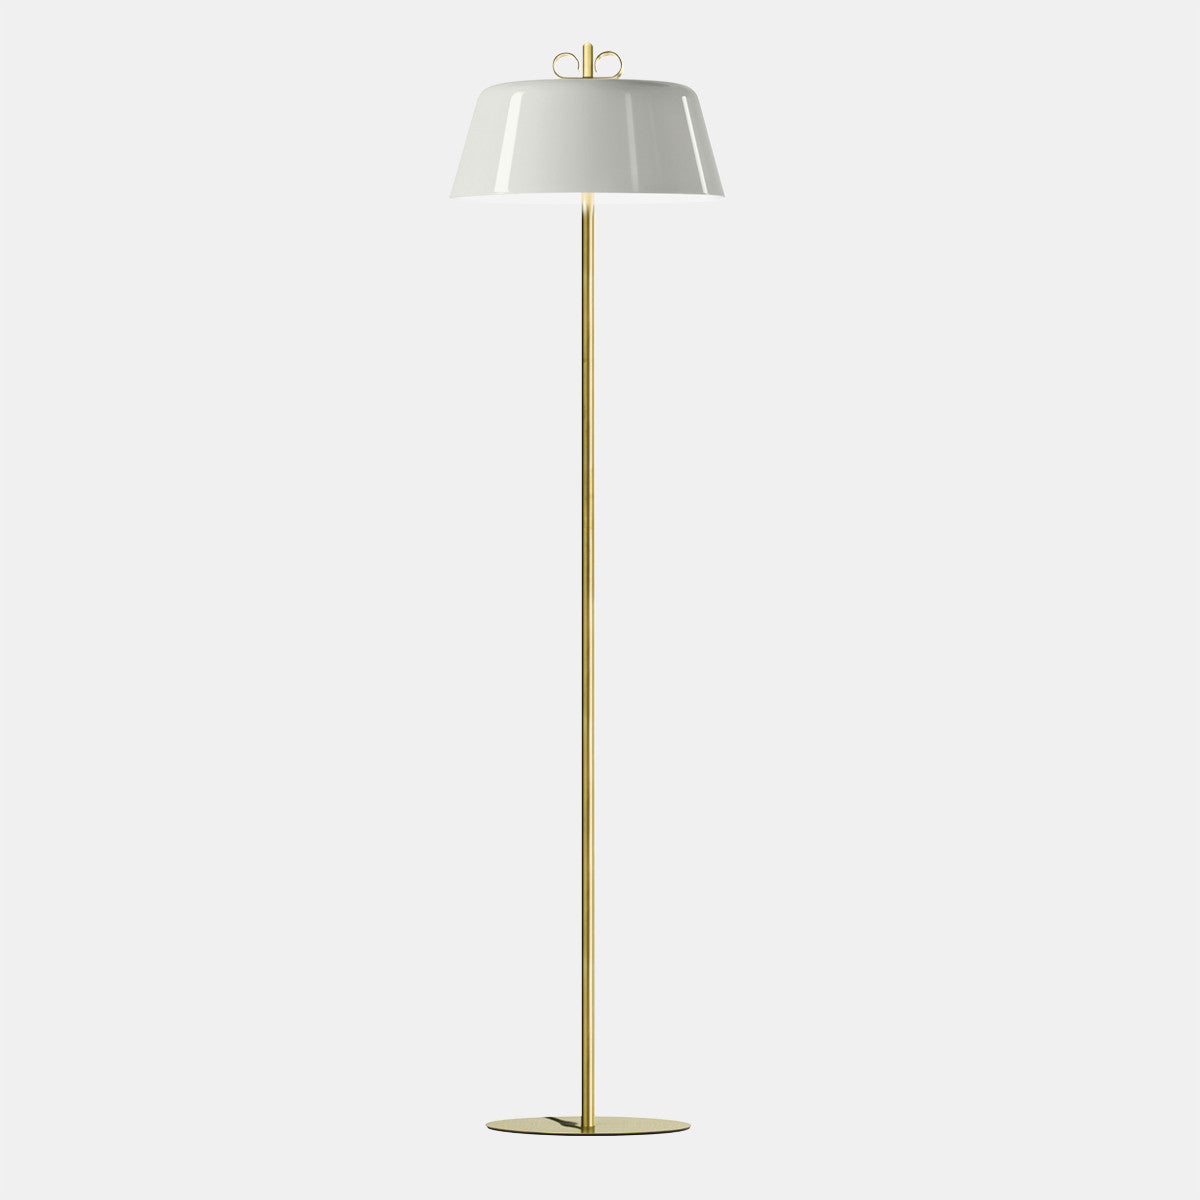 Bon Ton White/Natural Brass Floor Lamp